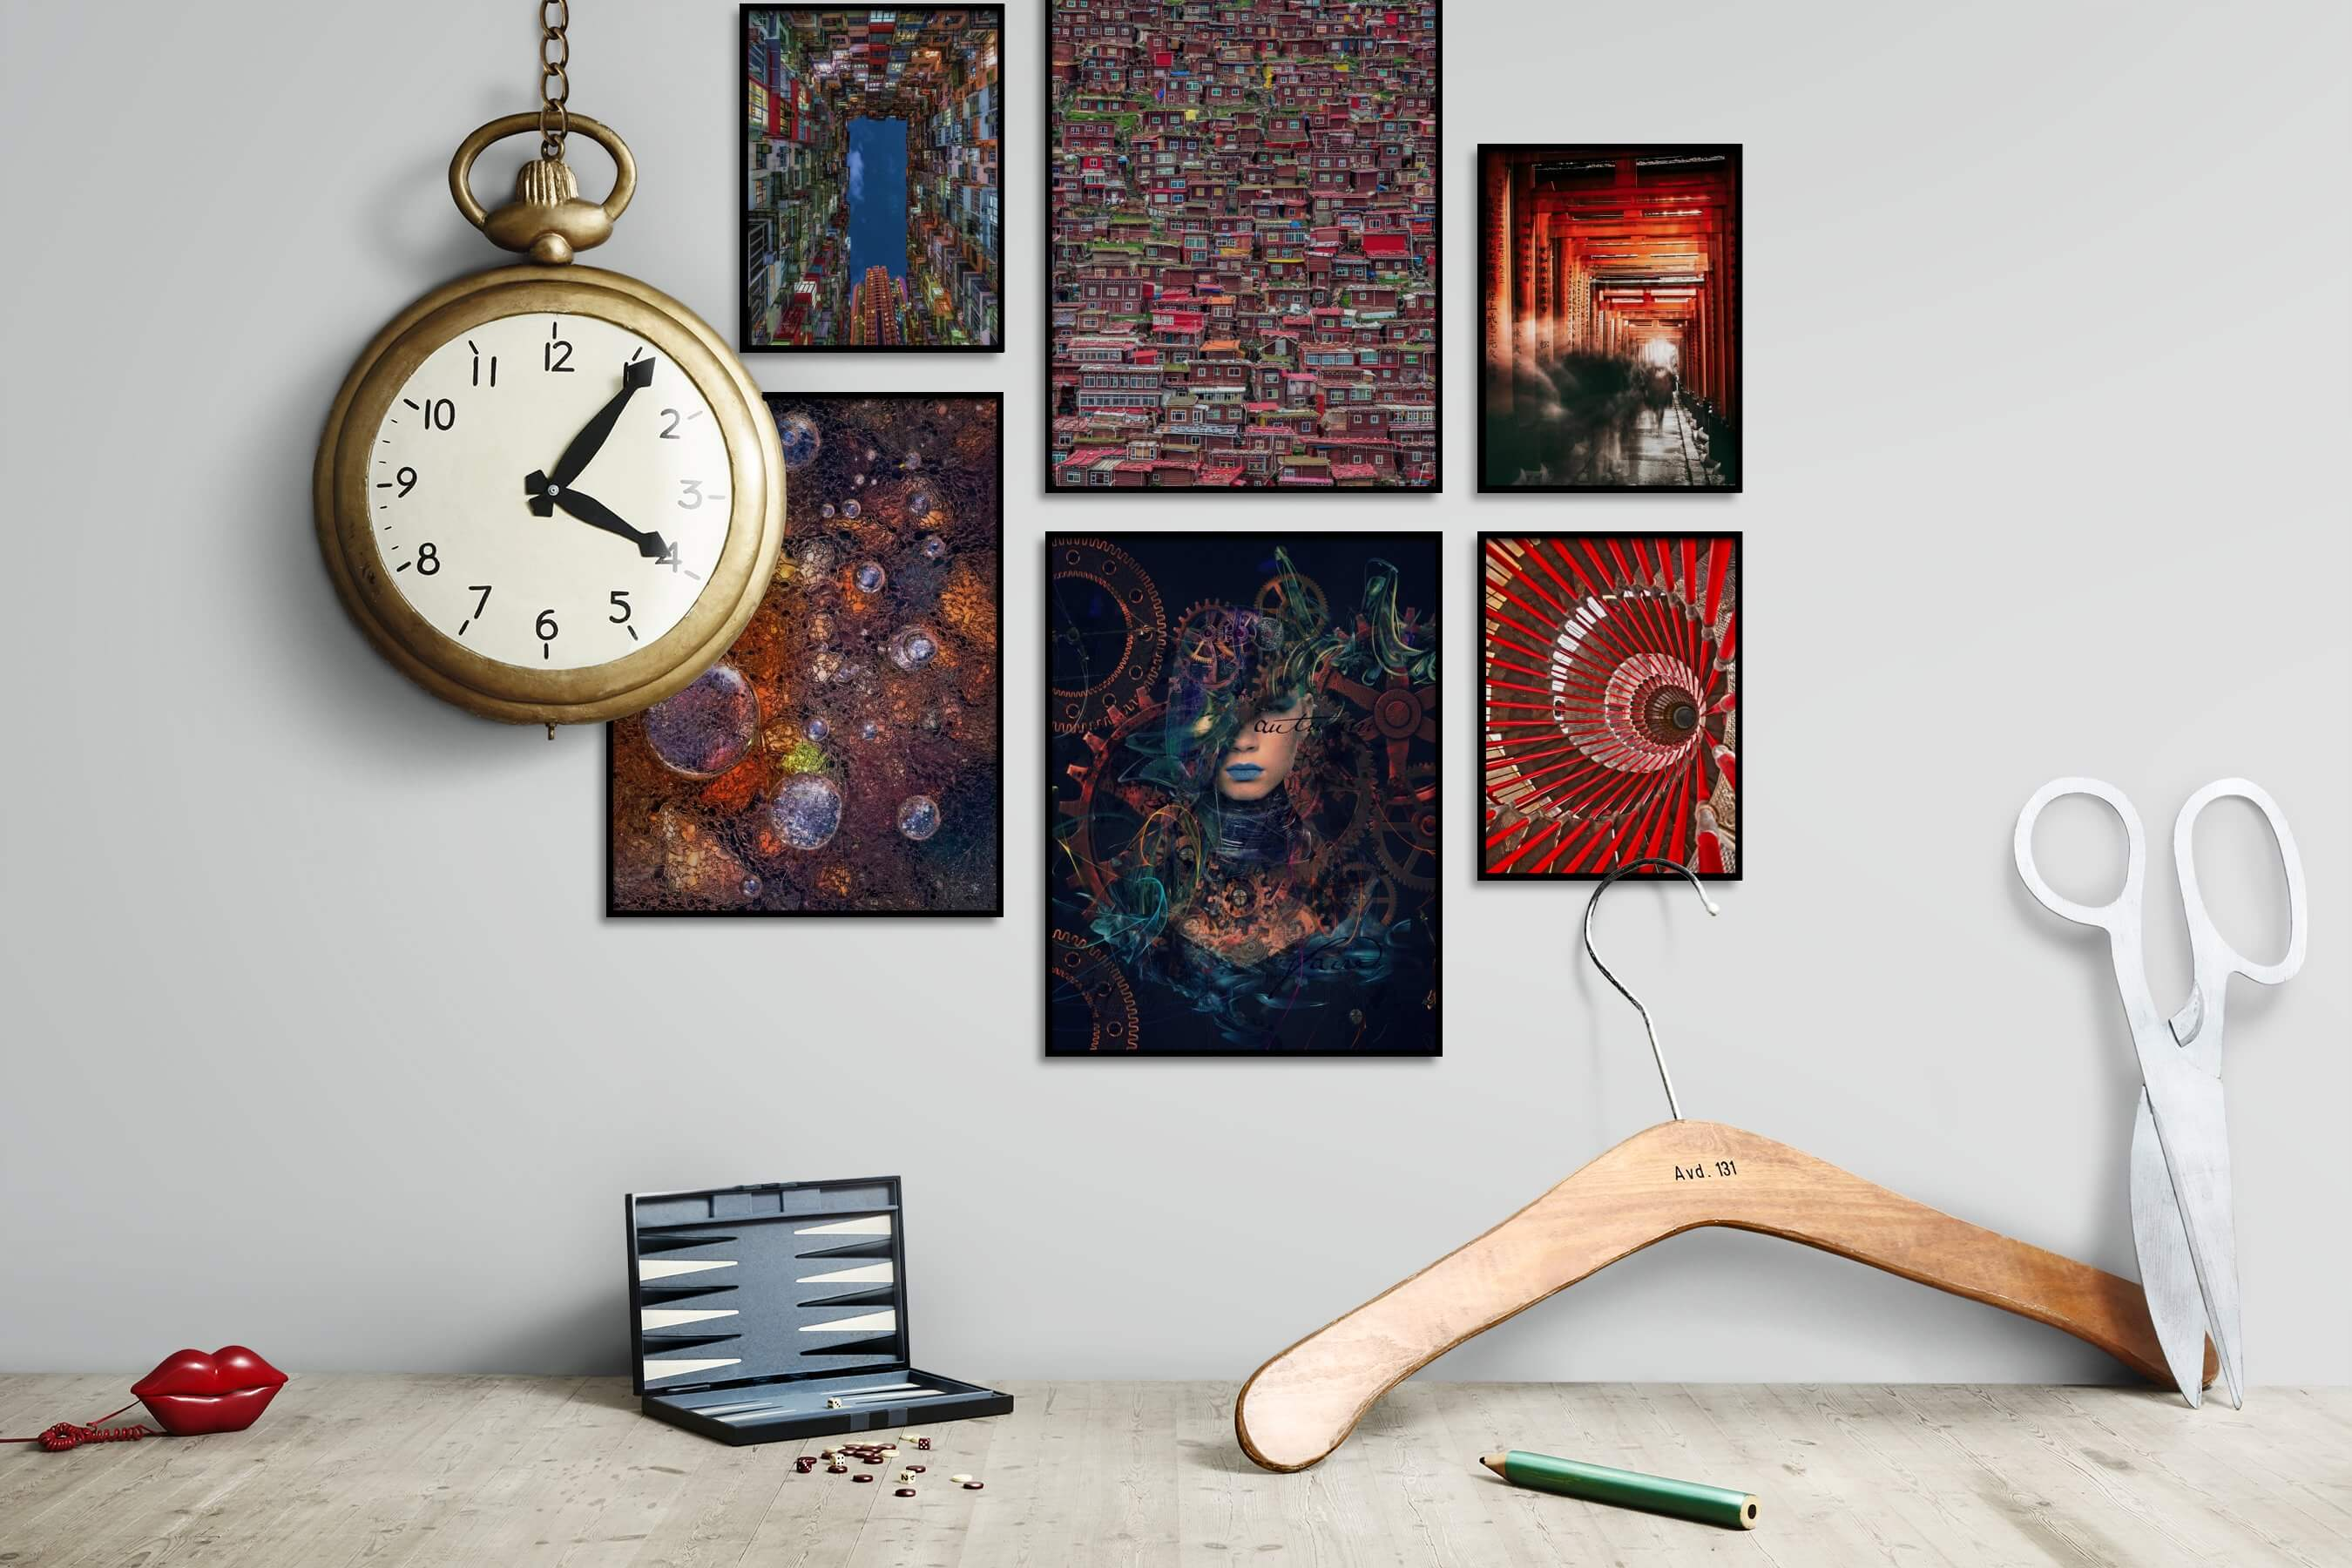 Gallery wall idea with six framed pictures arranged on a wall depicting For the Maximalist, City Life, Fashion & Beauty, and Dark Tones